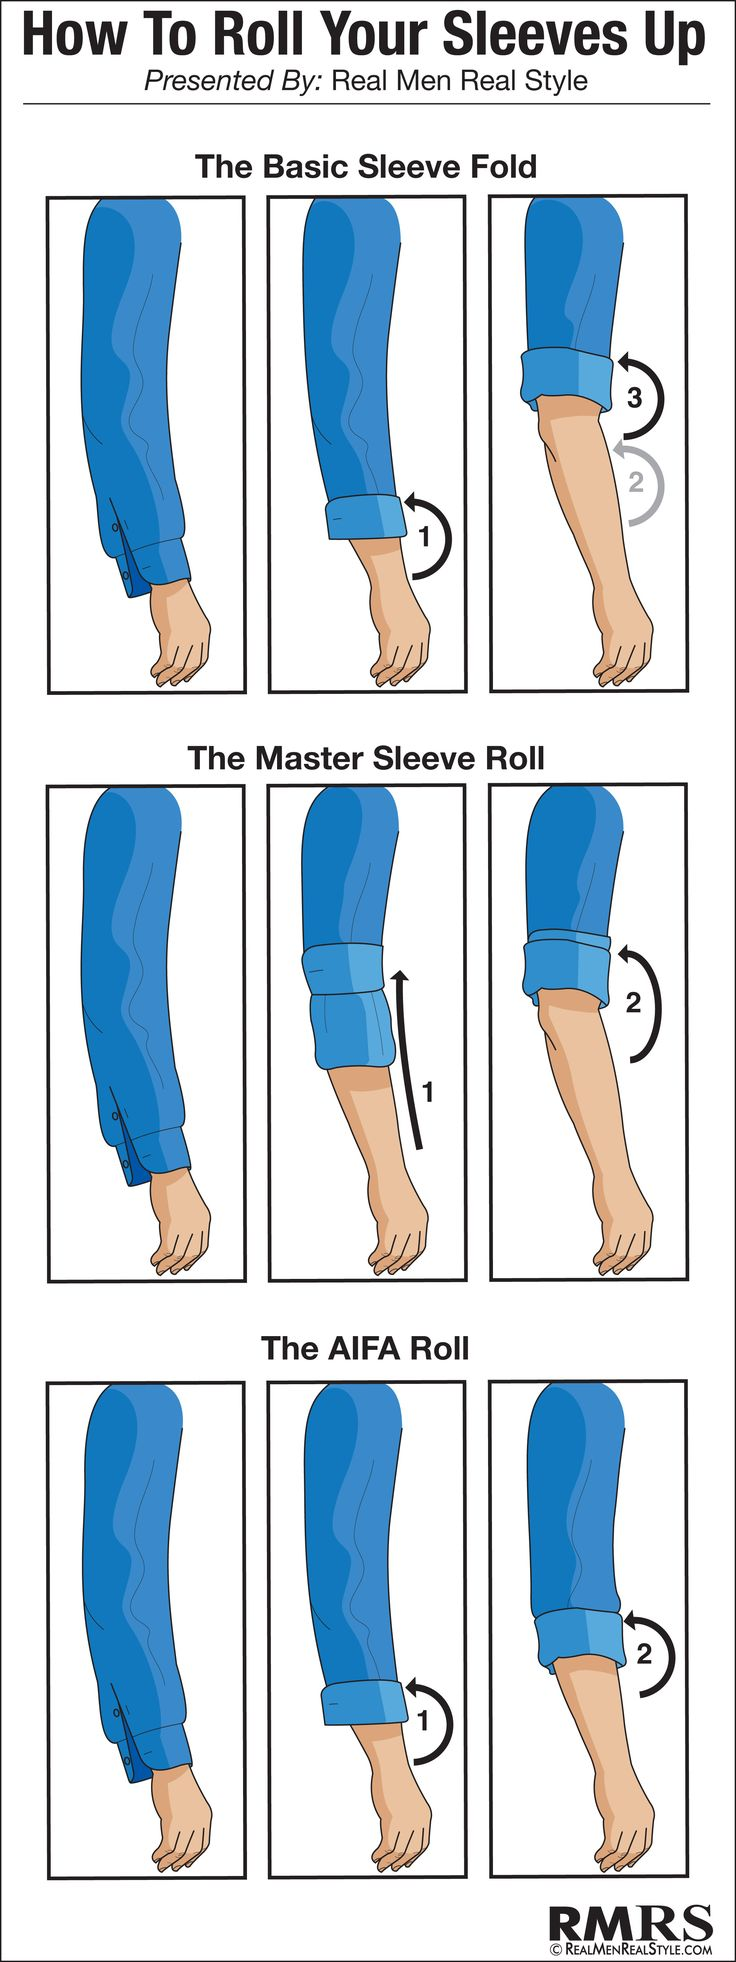 Reddit male fashion advice roll up sleeves